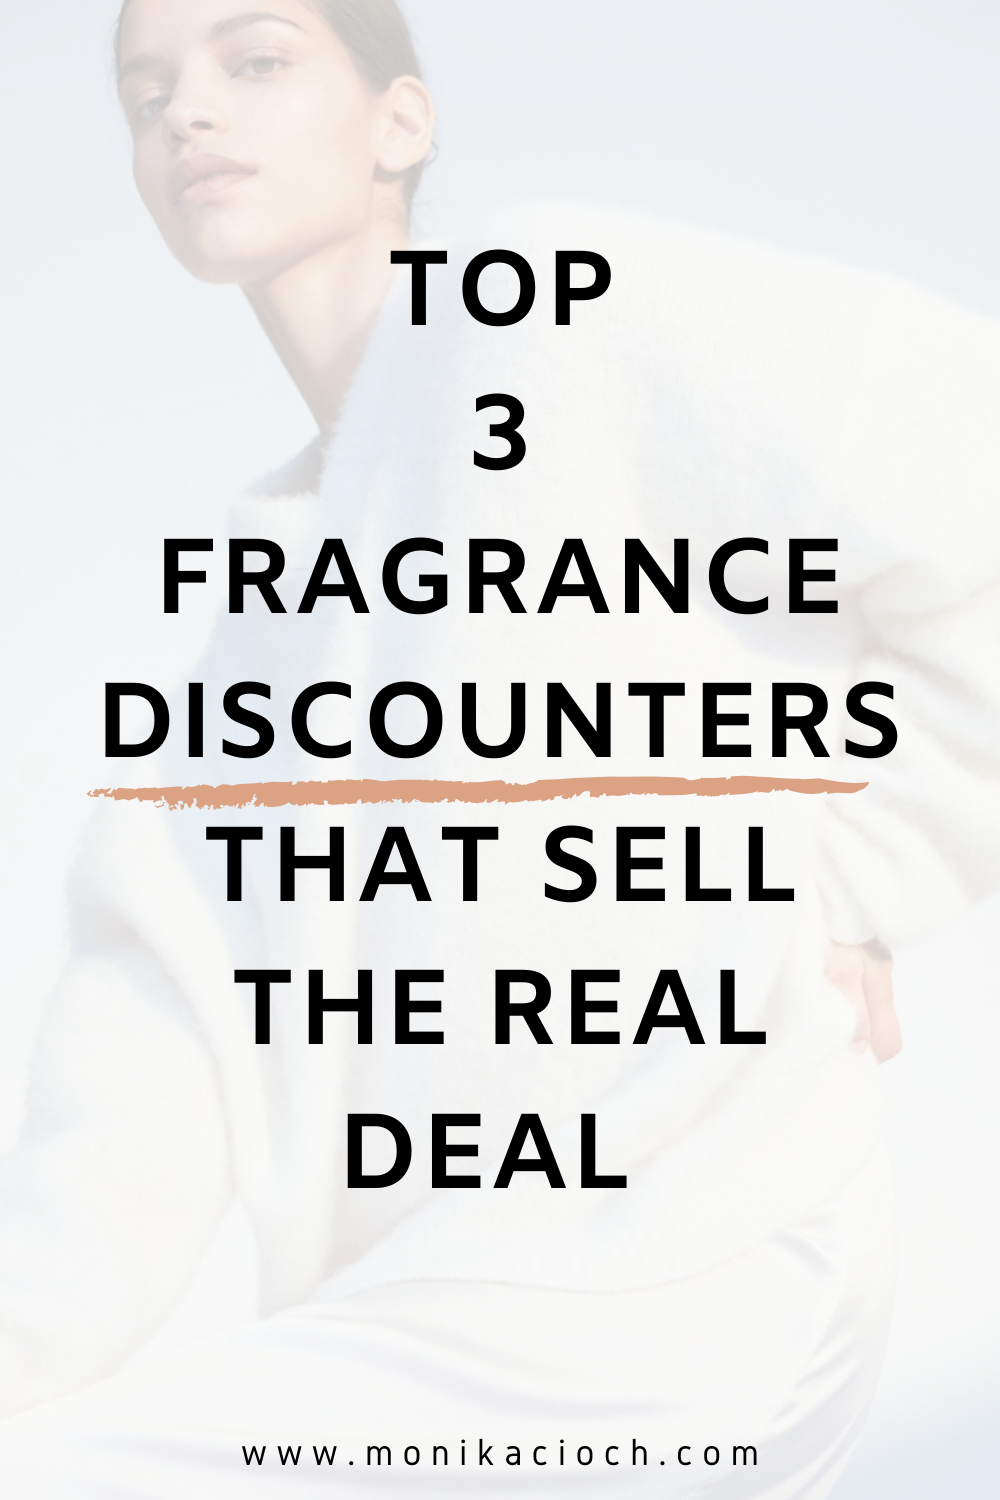 top fragrance discounters